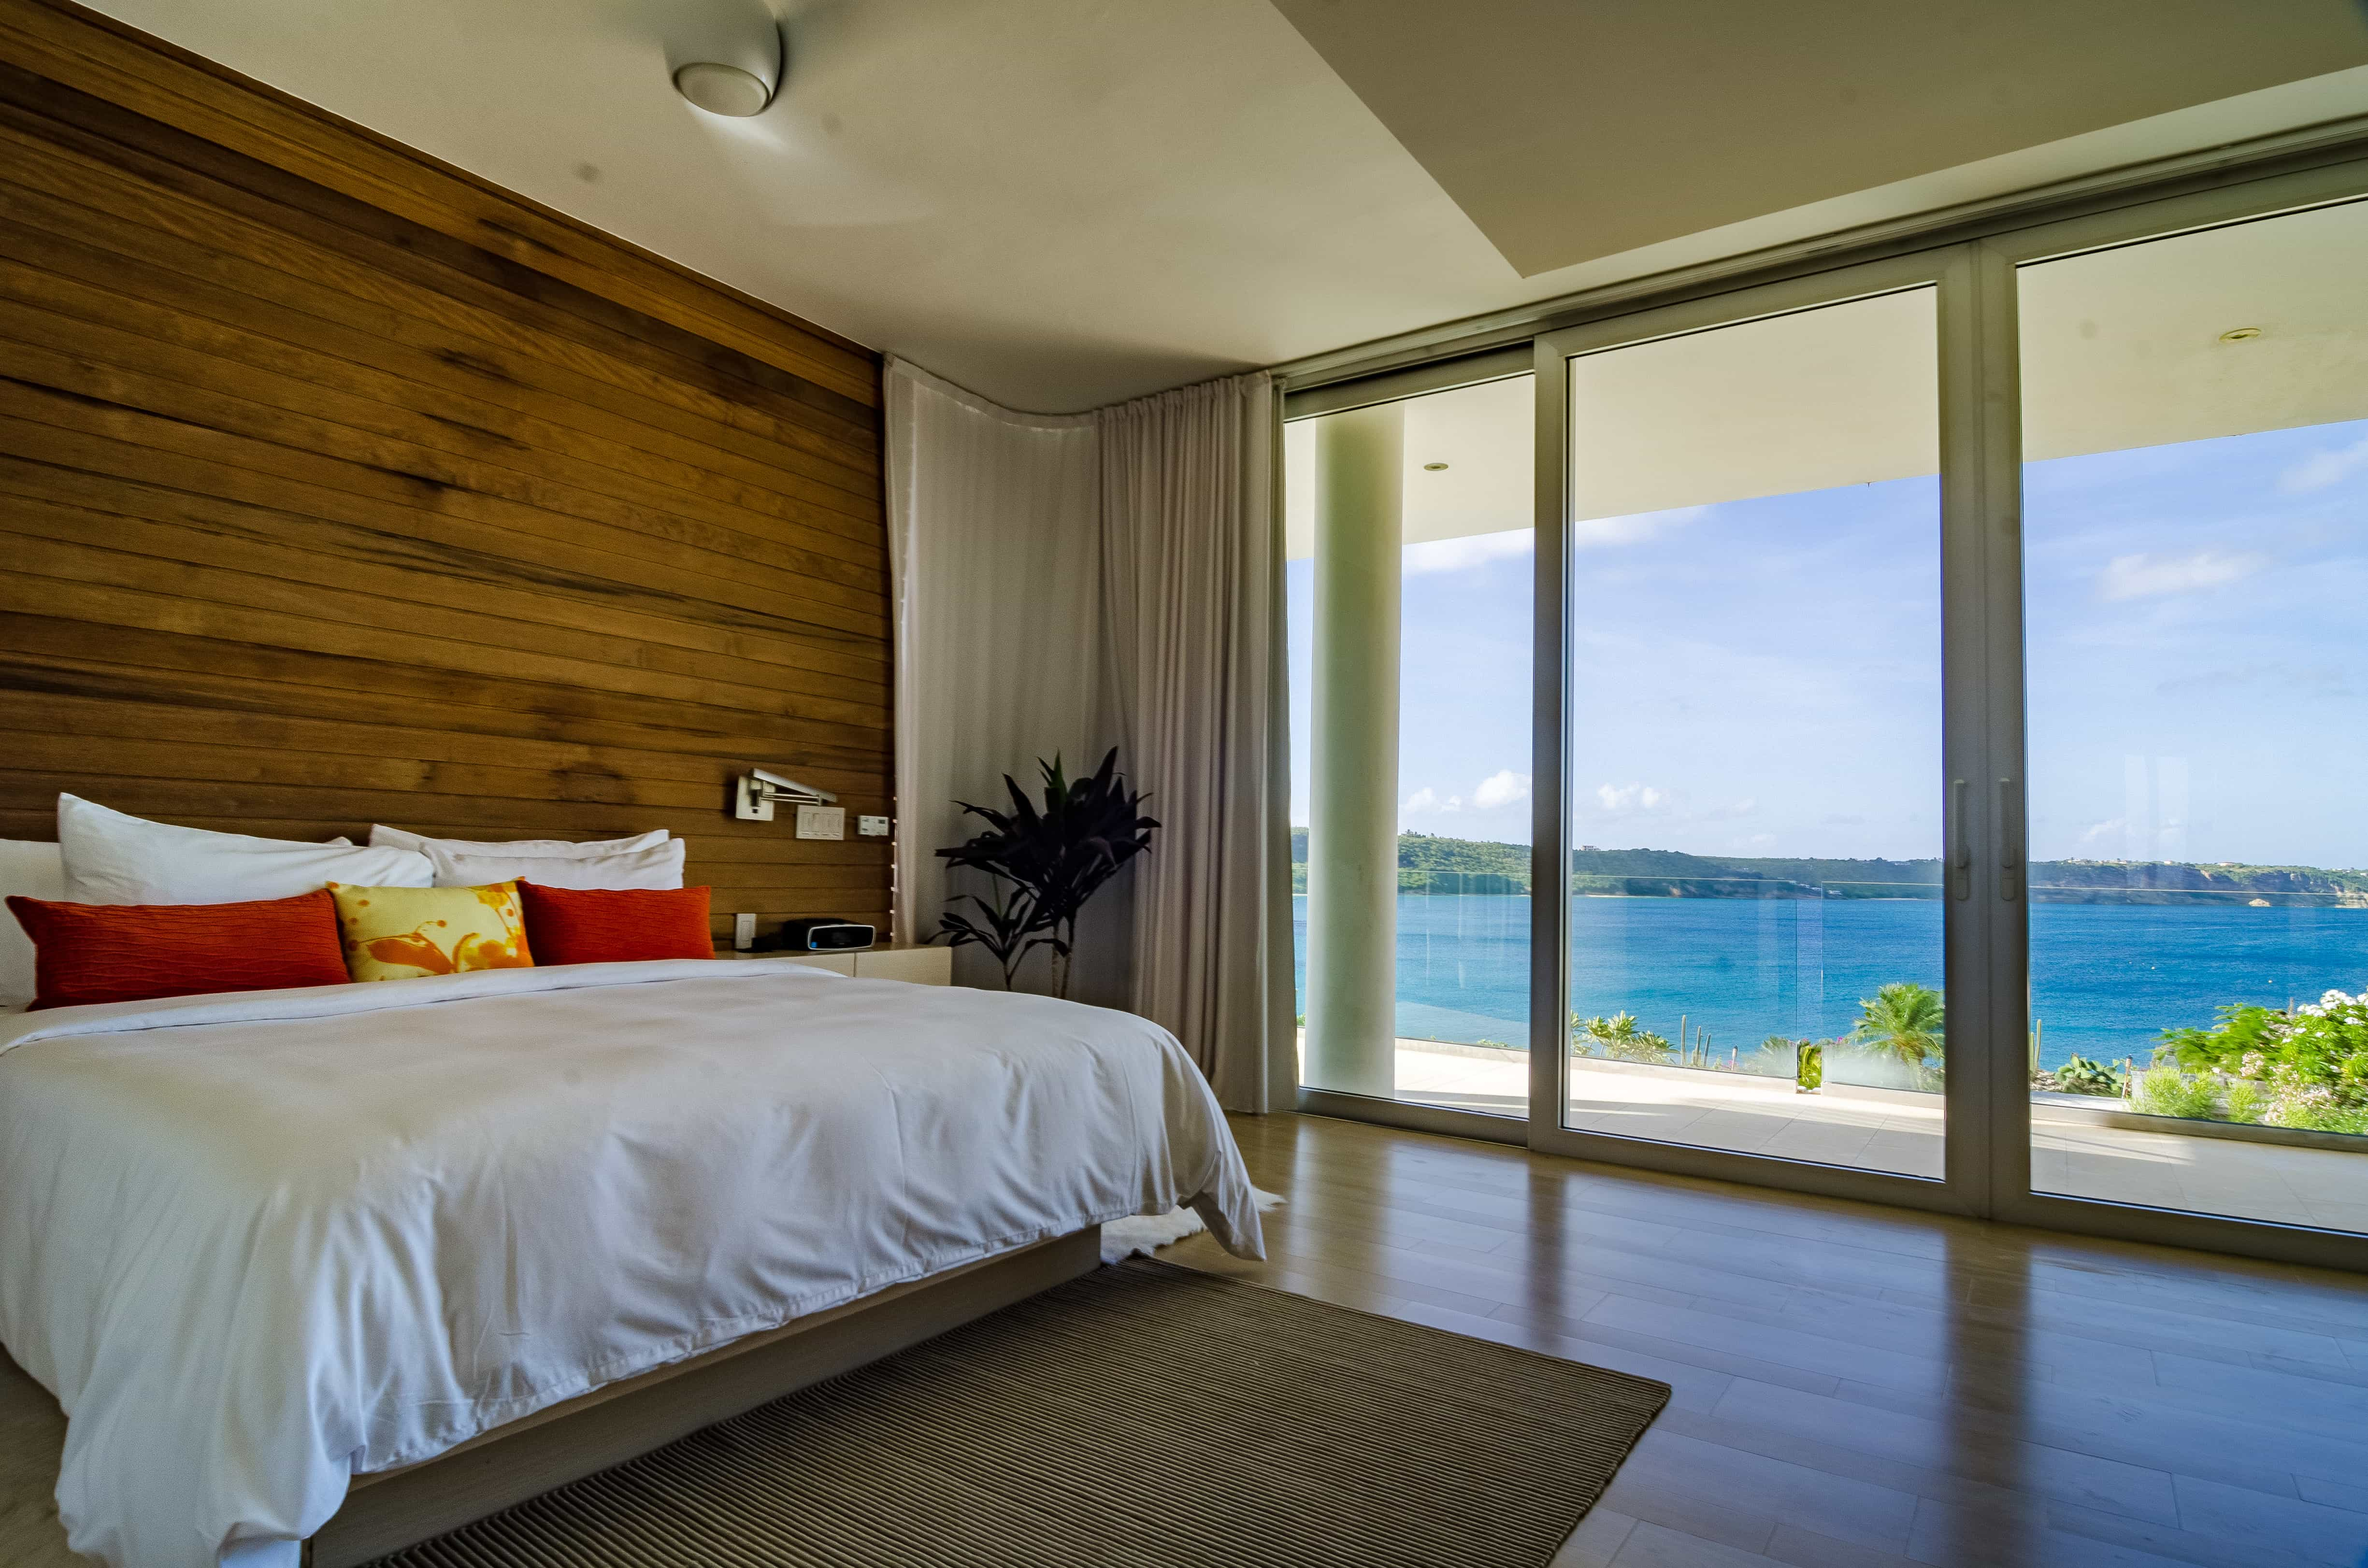 All 10 suites and master bedrooms are impeccably appointed.